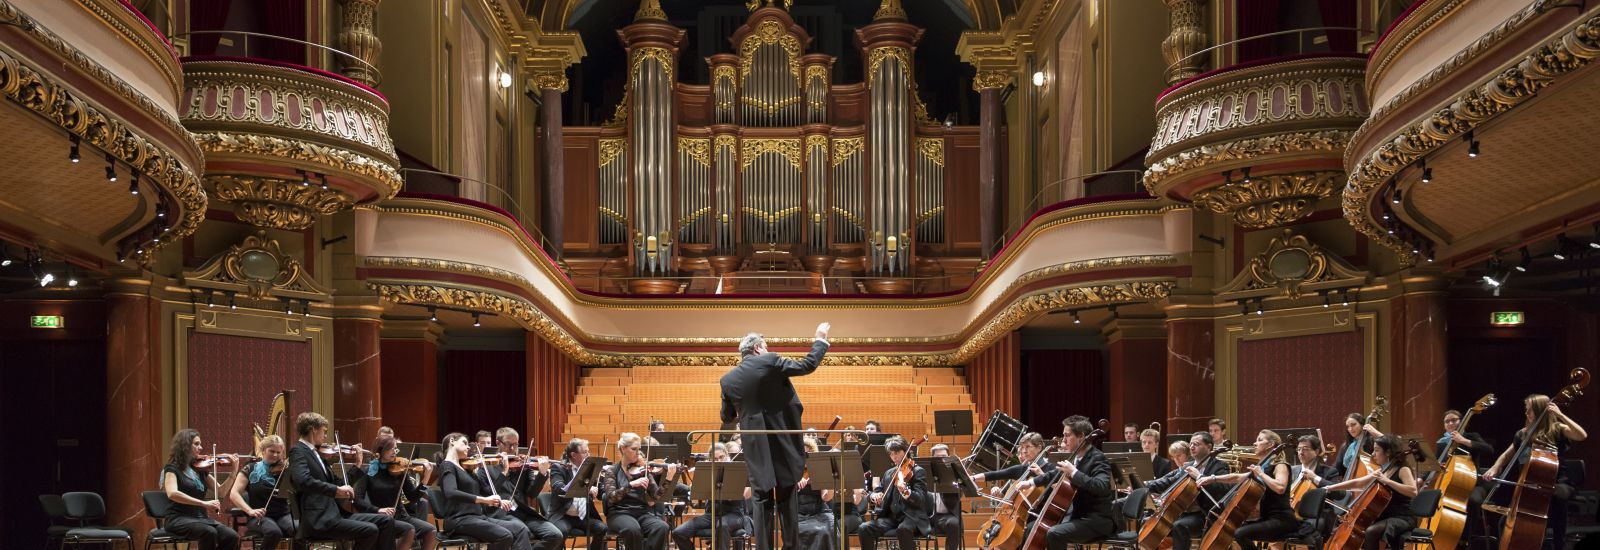 GENEVA - NOVEMBER 30: Antoine Marguier conducts the United Nations Orchestra rehearsal at the Victoria Hall November 30, 2013 in Geneva, Switzerland. The concert supports PVA-Geneva work in Cameroon.